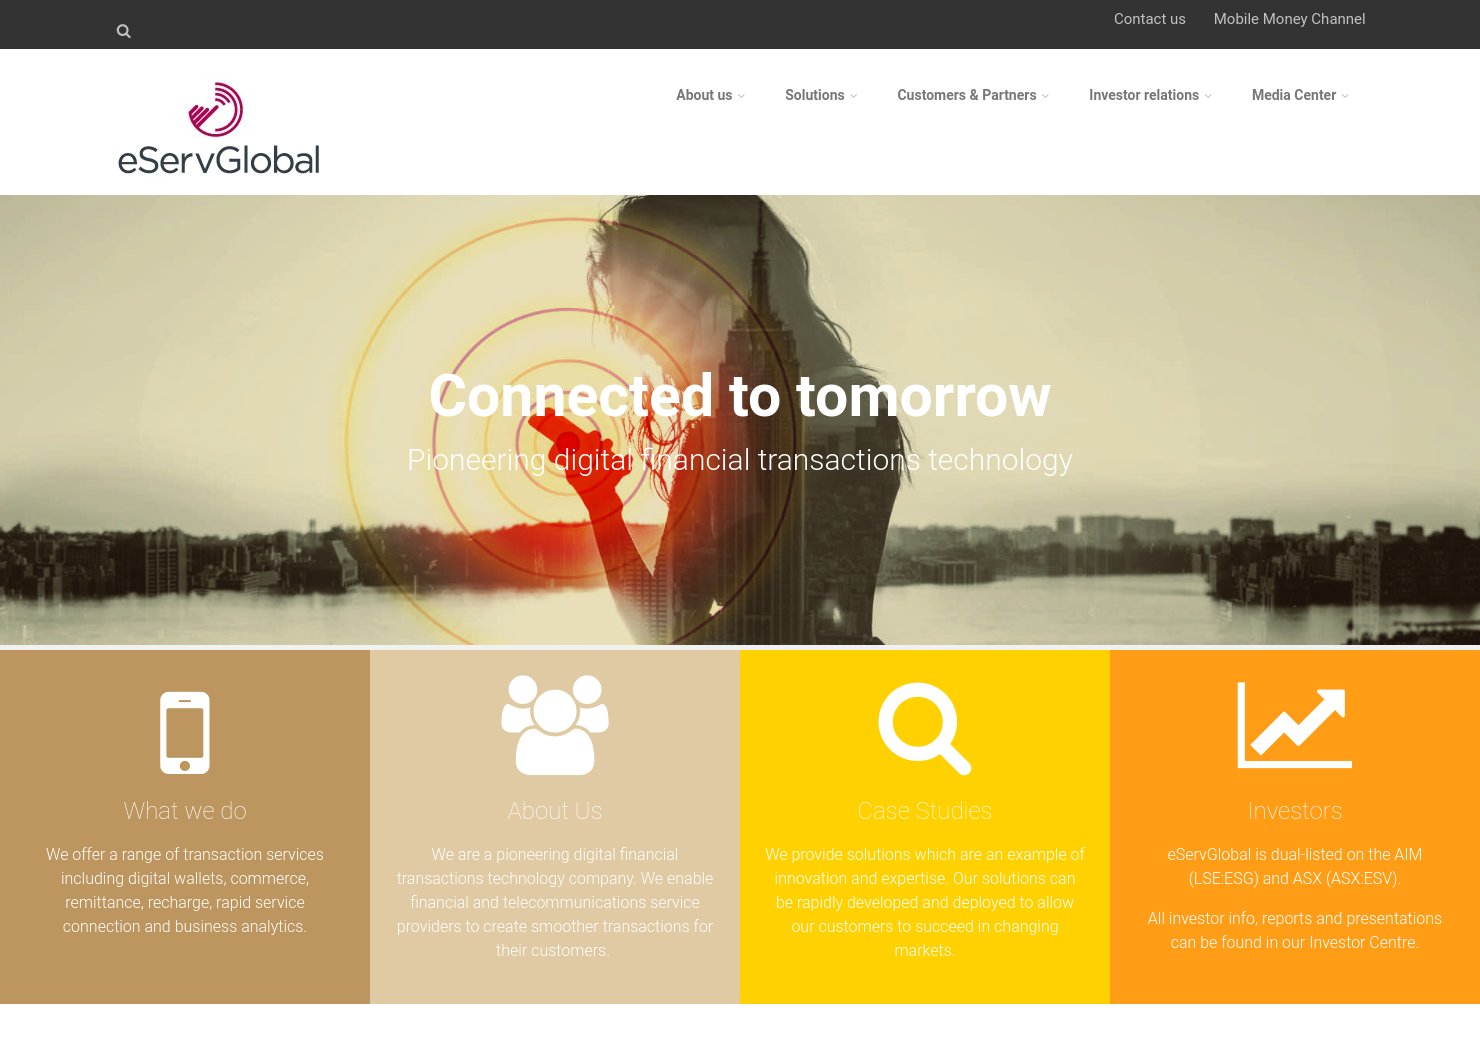 eServGlobal Home Page